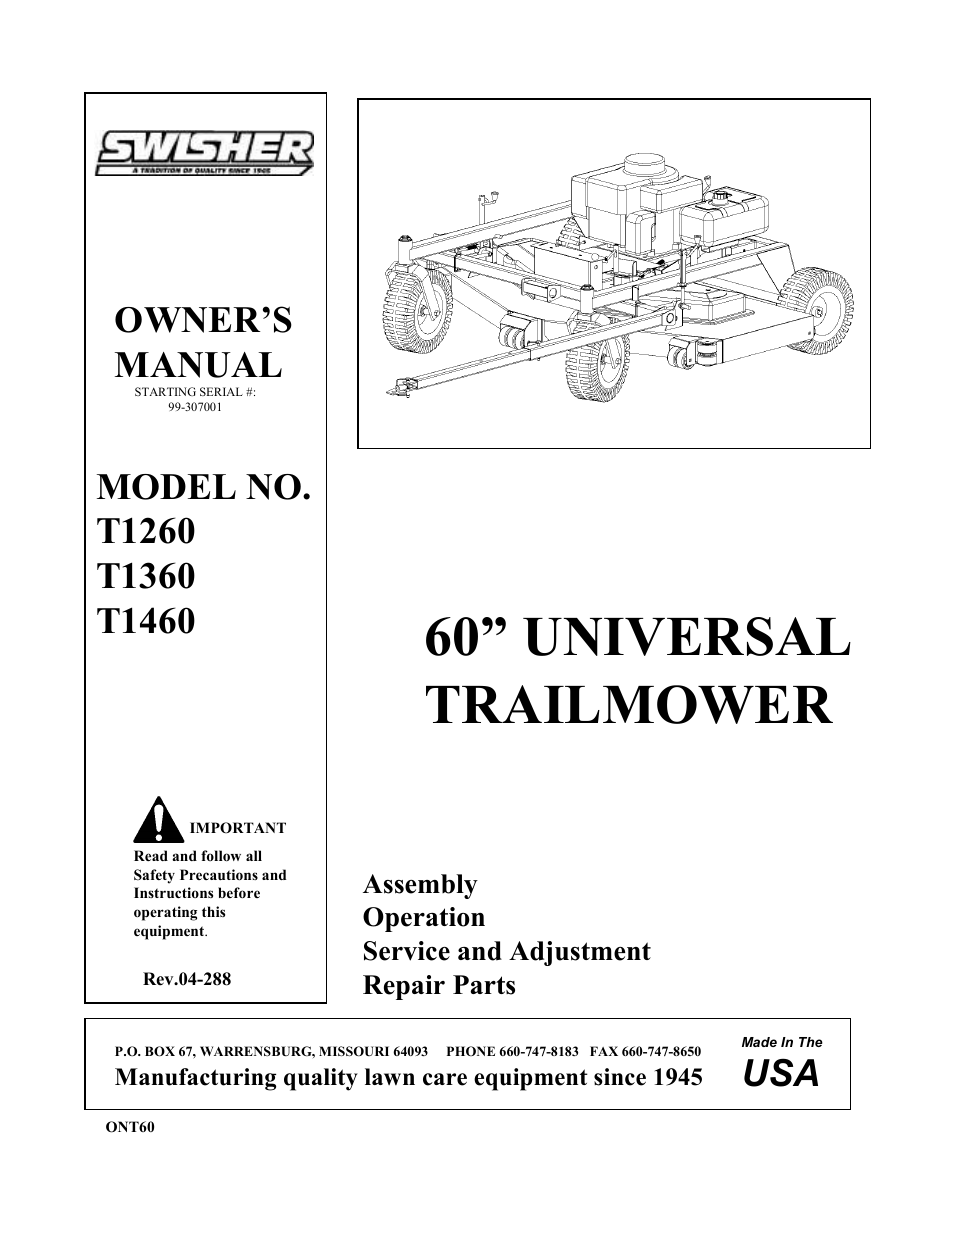 wiring diagram for swisher mower – the wiring diagram – readingrat, Wiring diagram